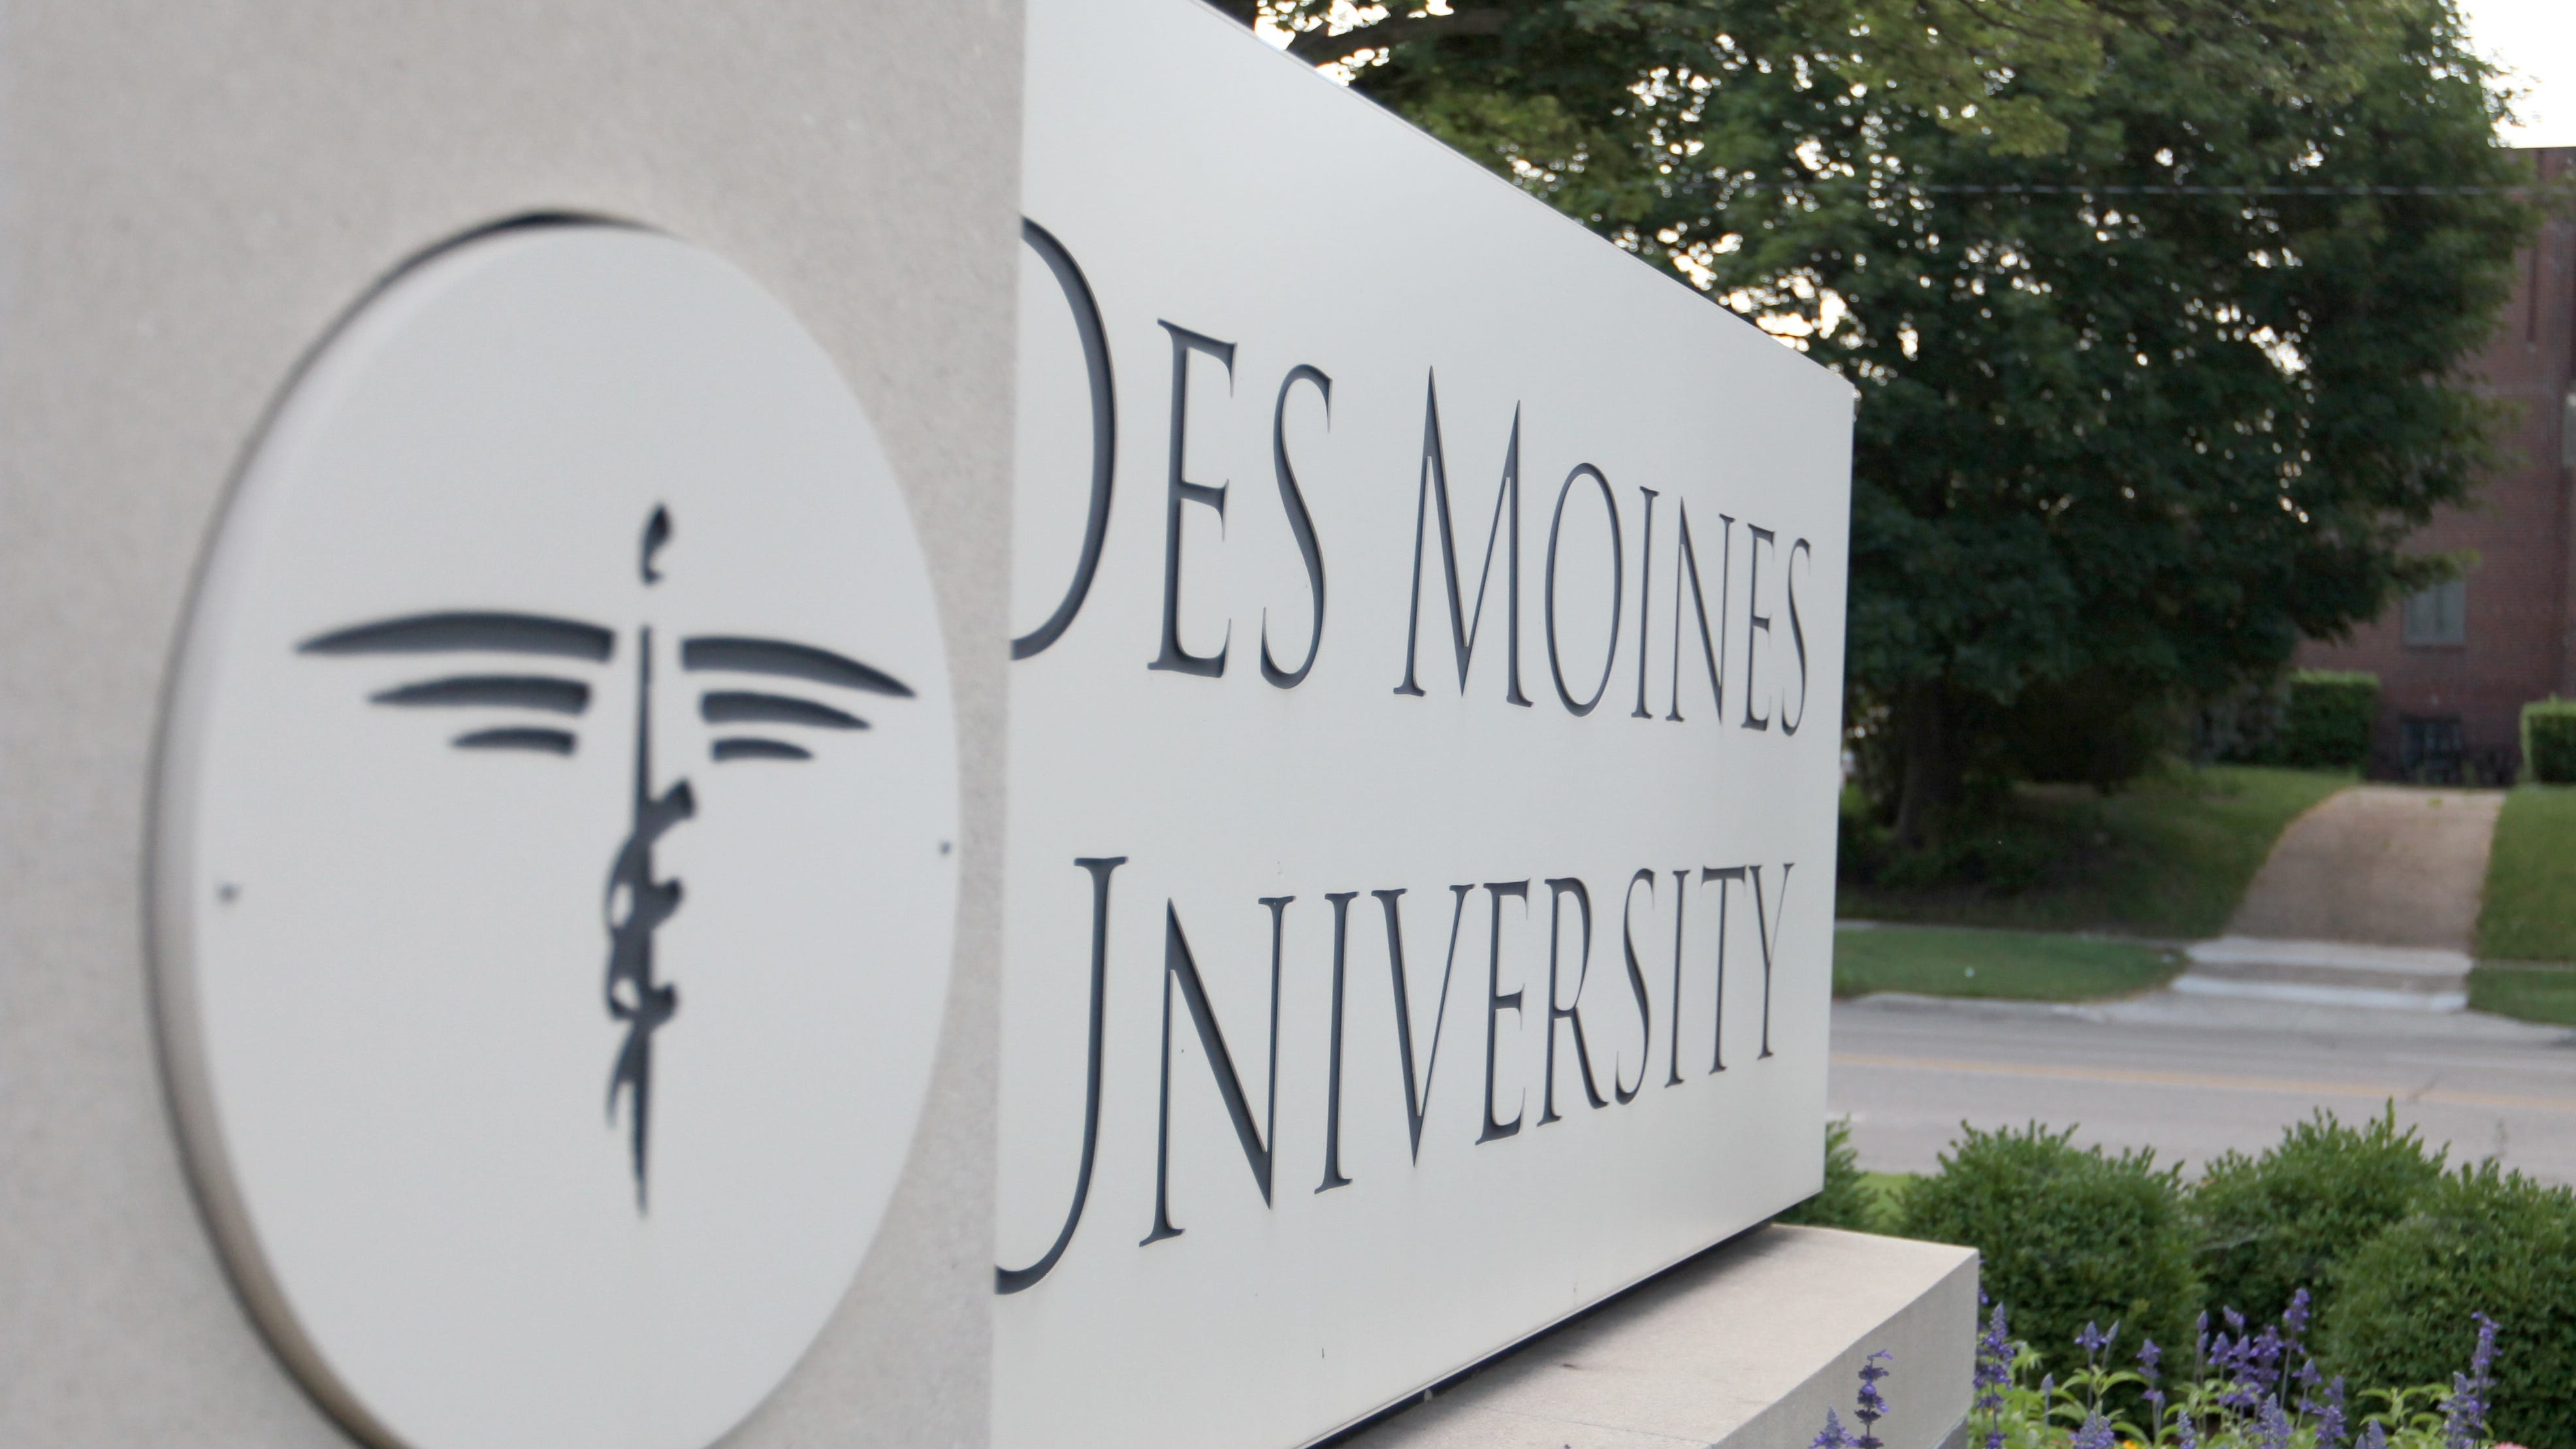 Neighbors say Des Moines University parking lot expansion increases flooding risk